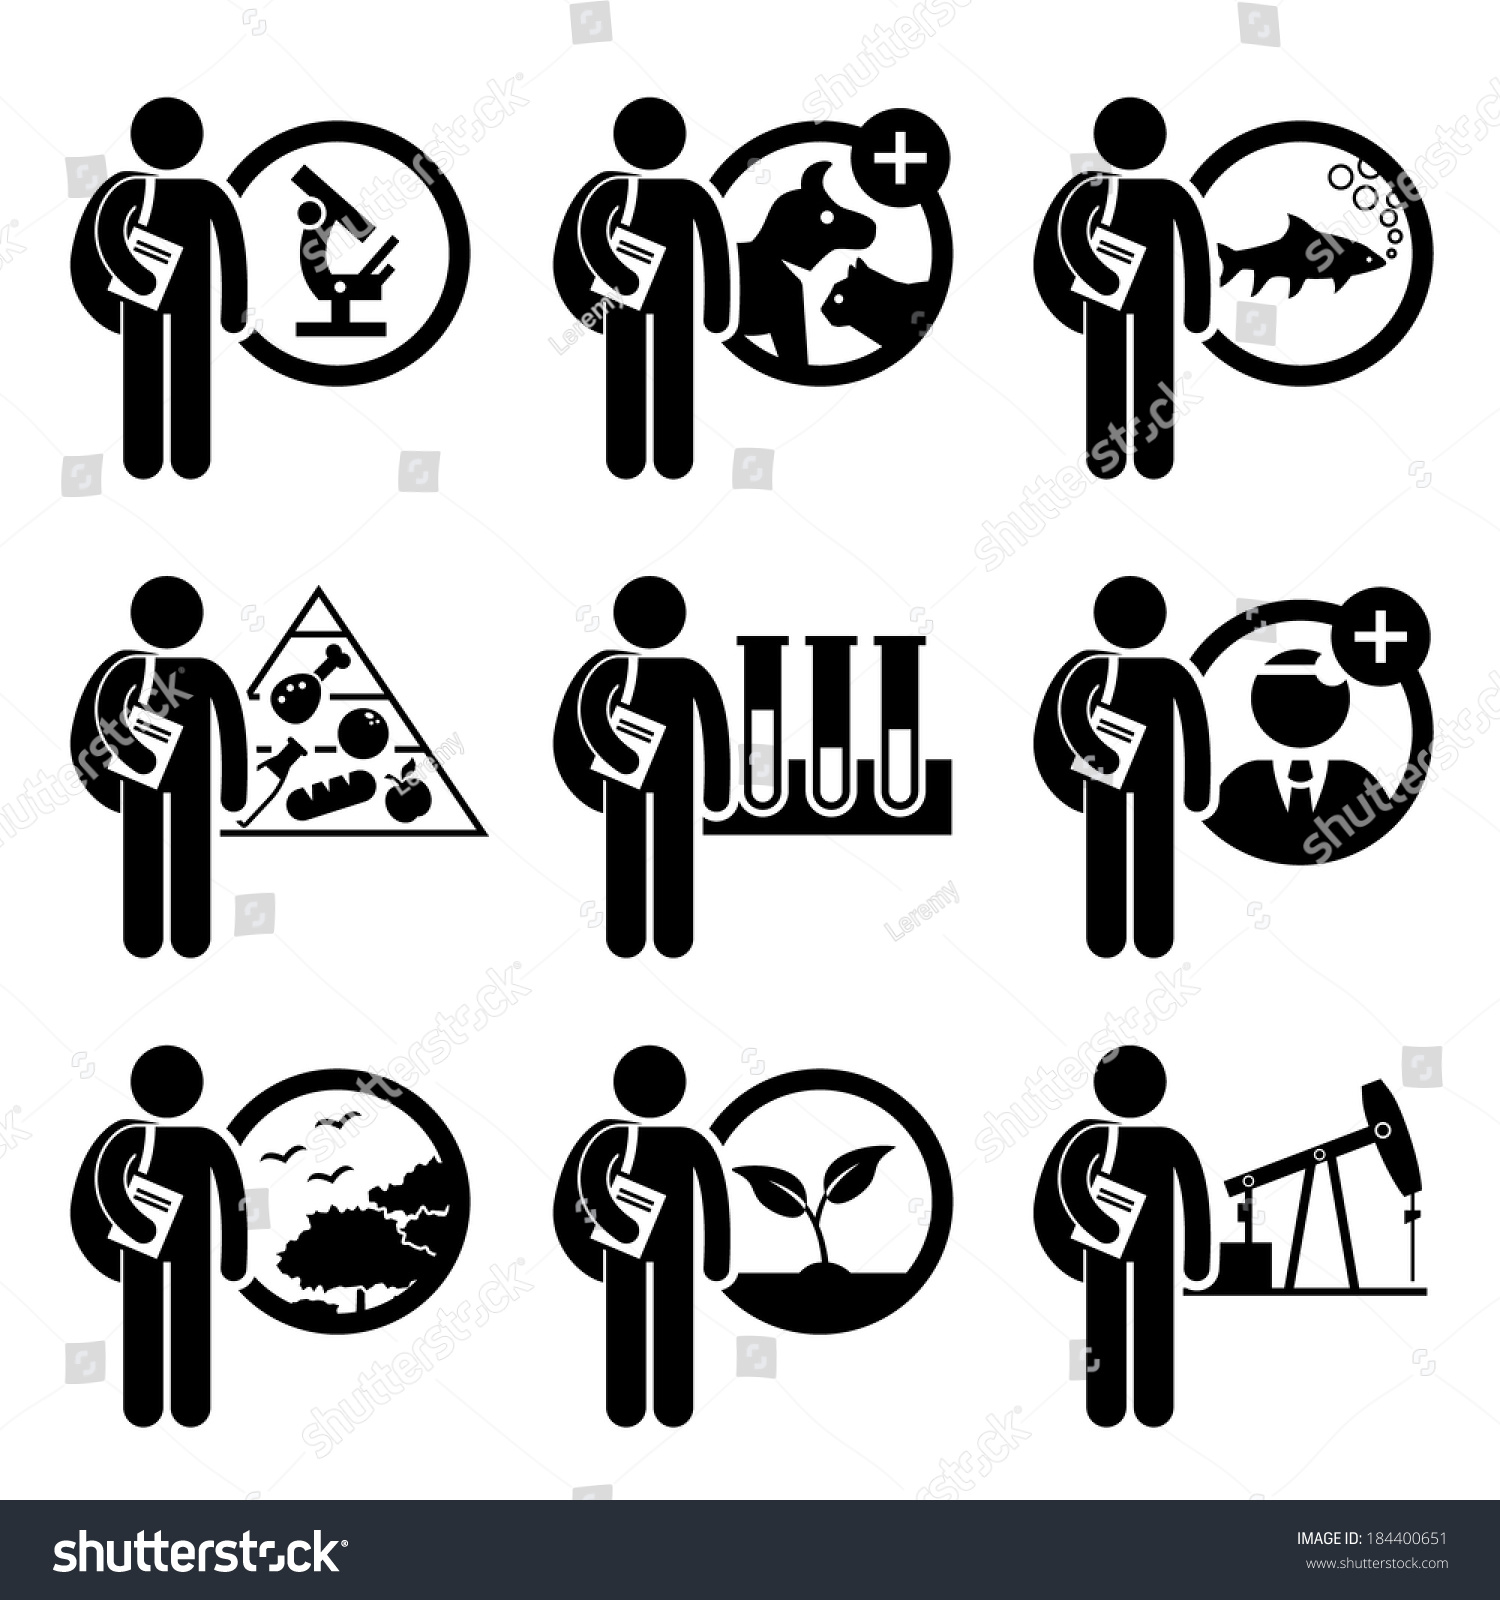 student degree in agriculture science stick figure pictogram icon - Agriculture Scientist Resume